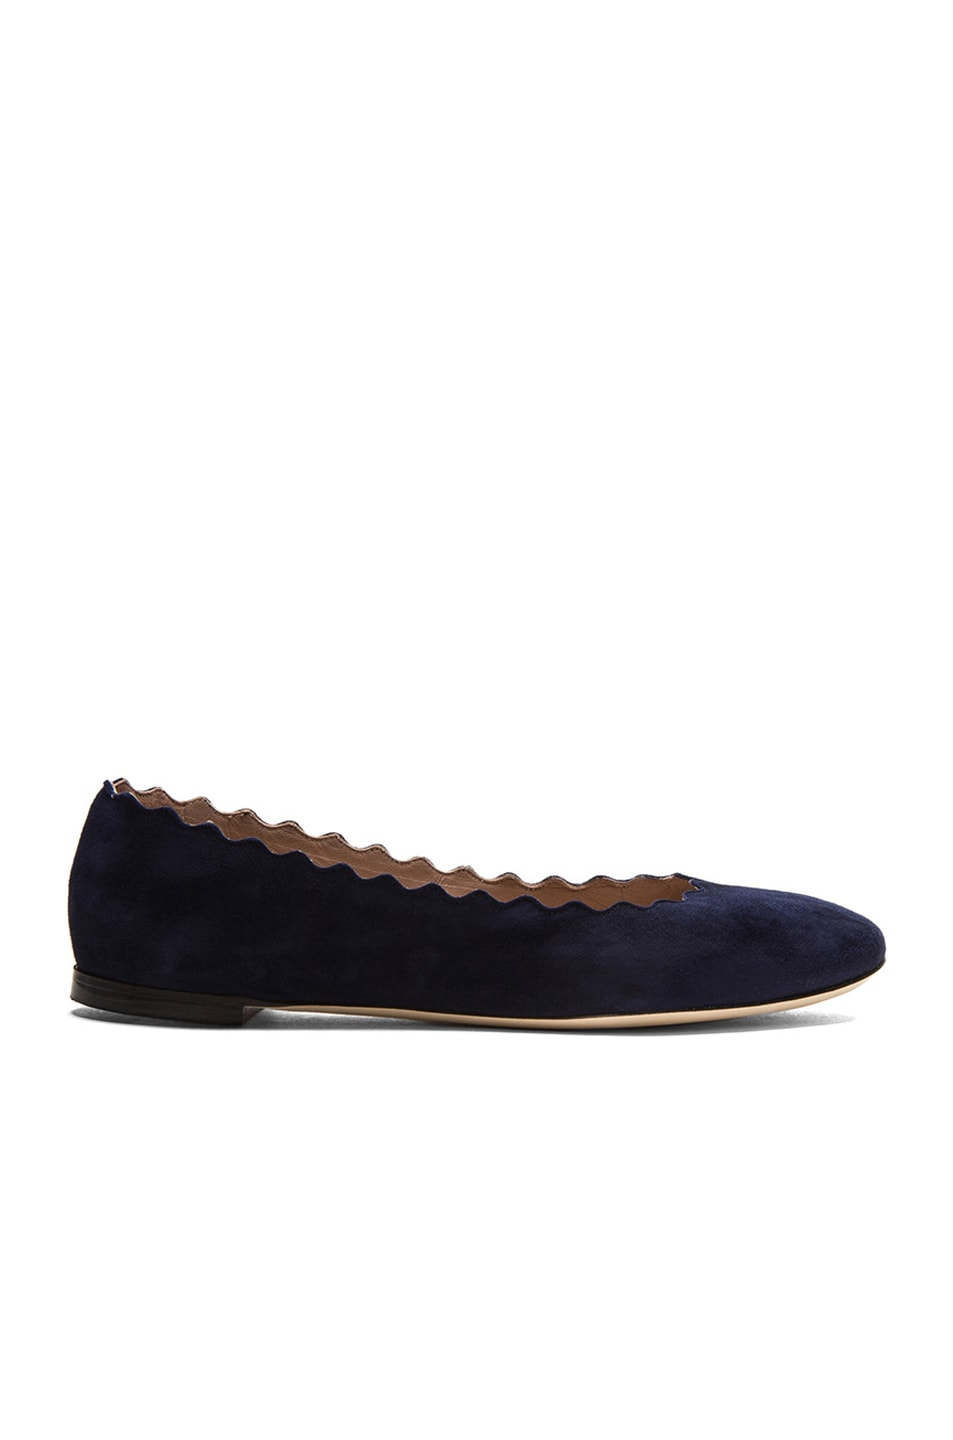 Image 1 of Chloe Suede Scalloped Flats in Blue Lagoon